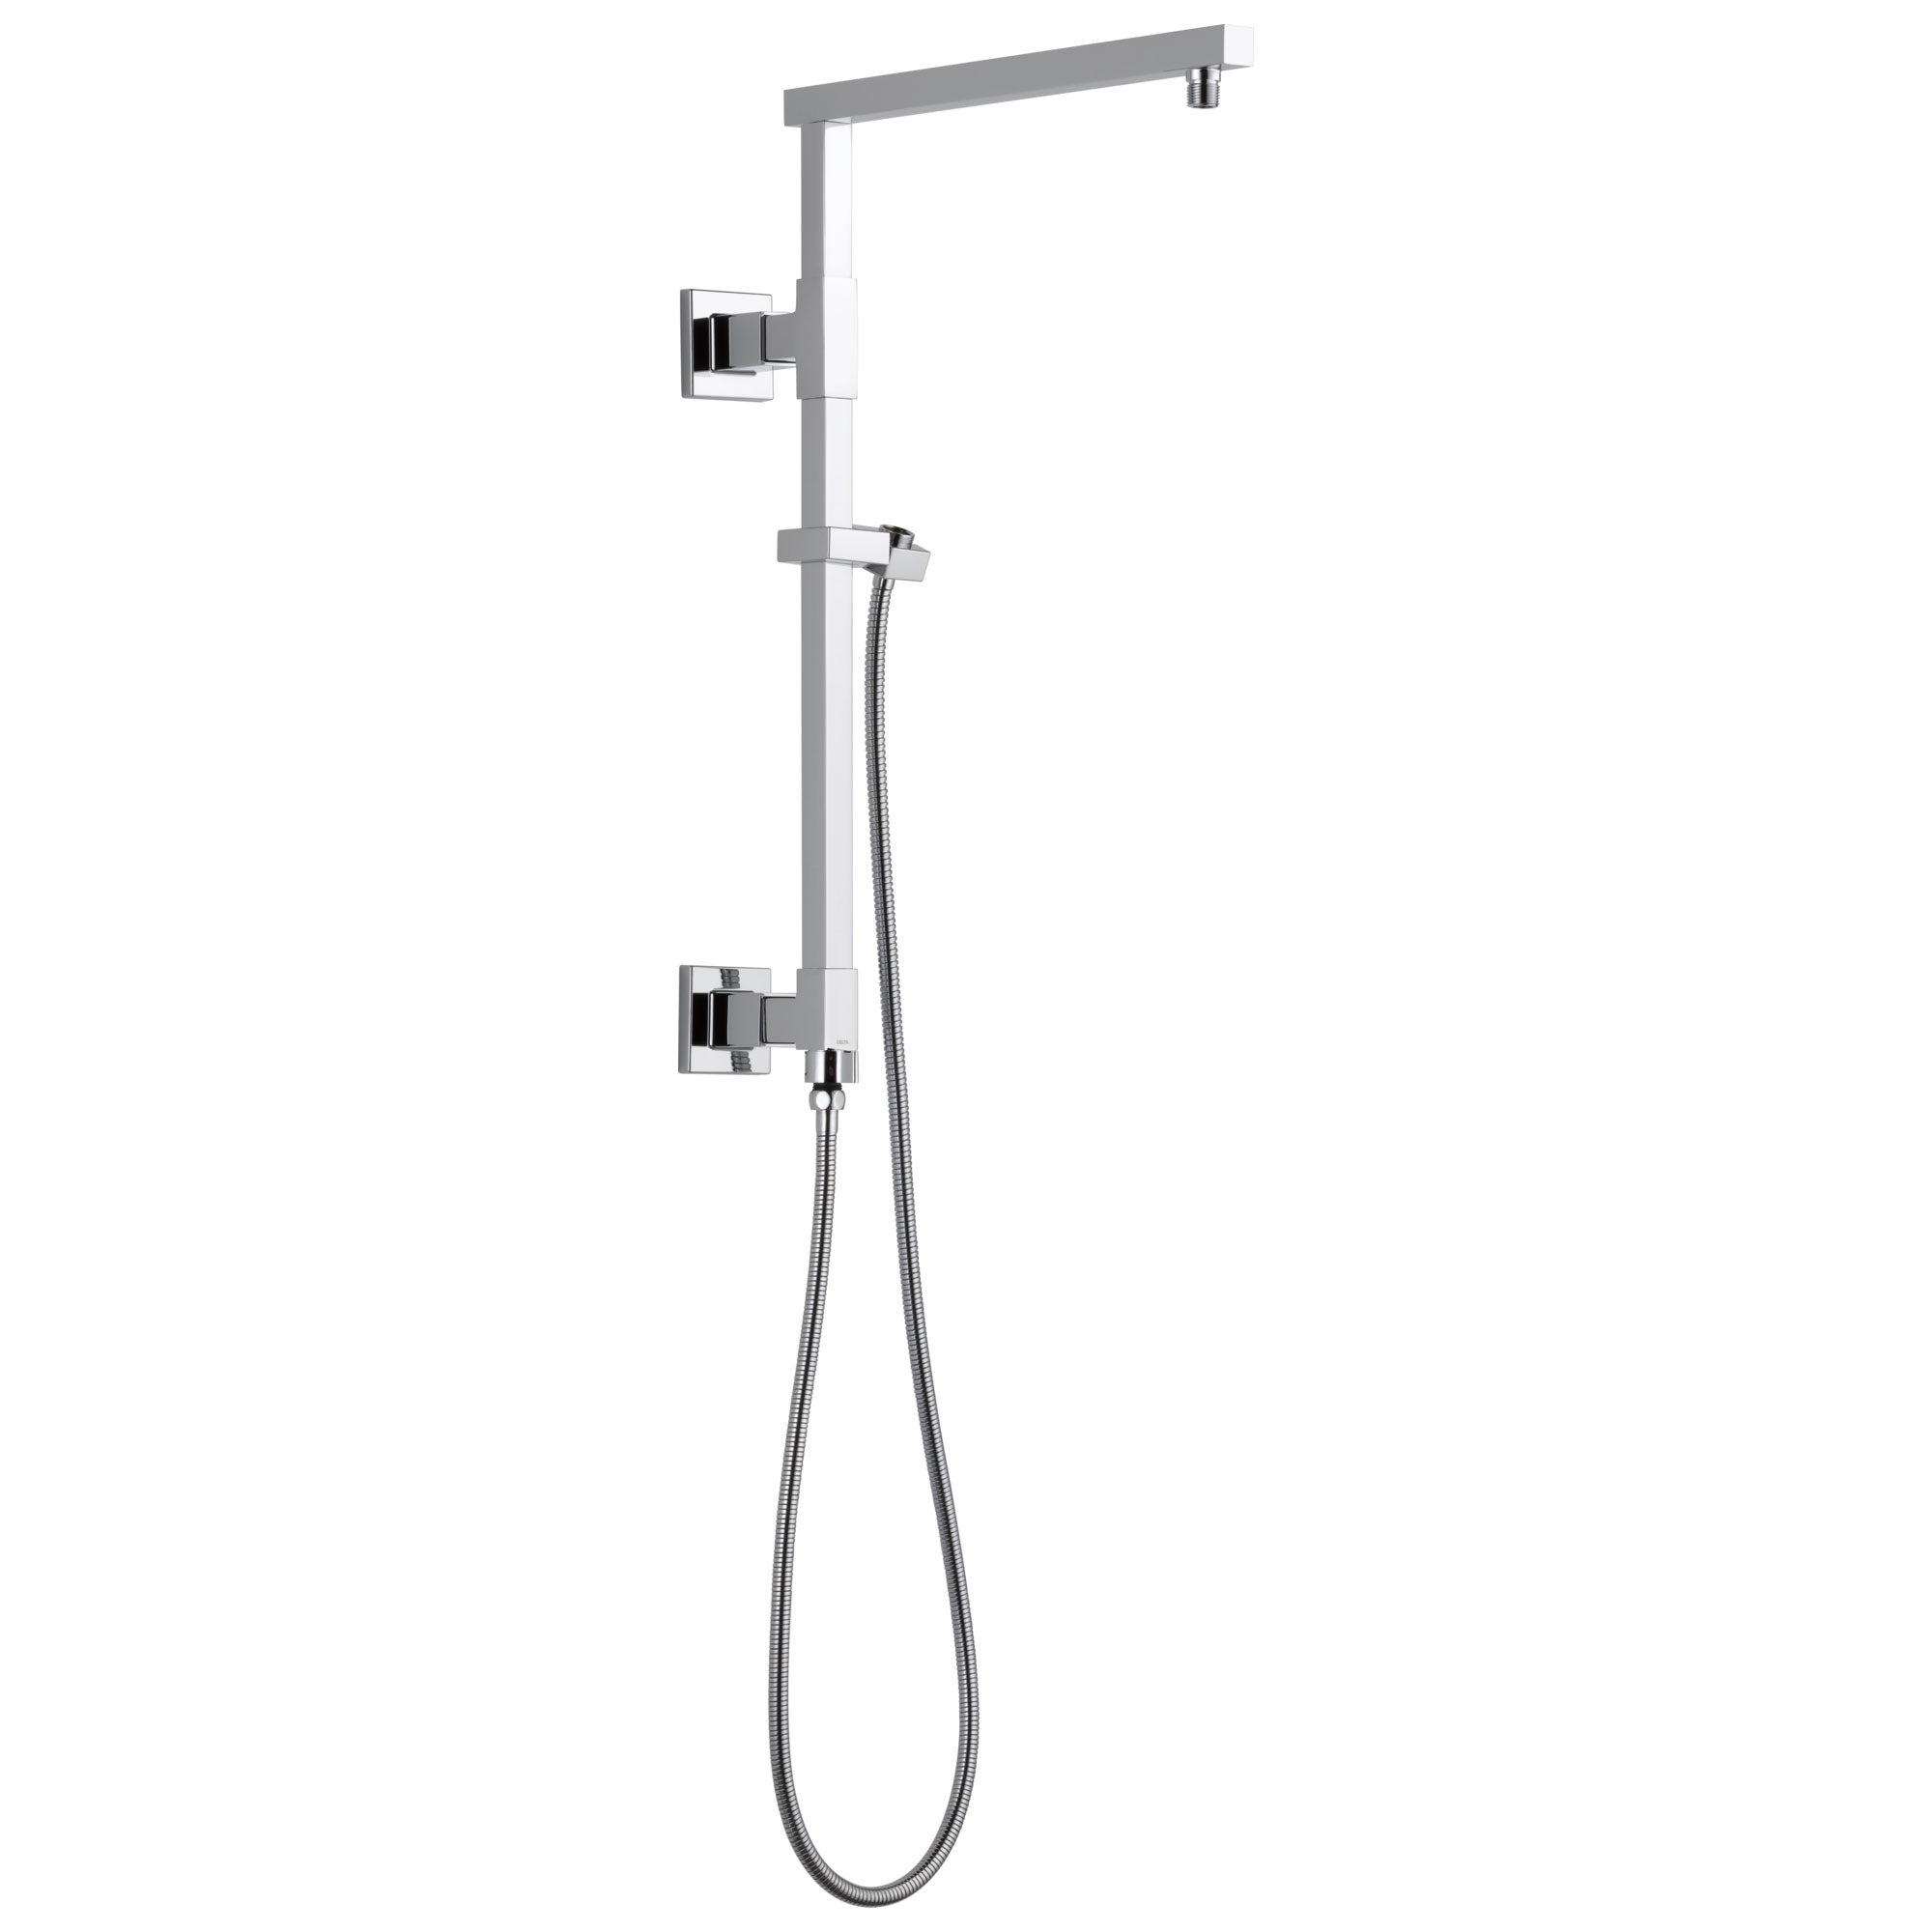 "Delta Chrome Finish Emerge Modern Angular Square Shower Column 18"" (Requires Showerhead, Hand Spray, and Control) D58410"